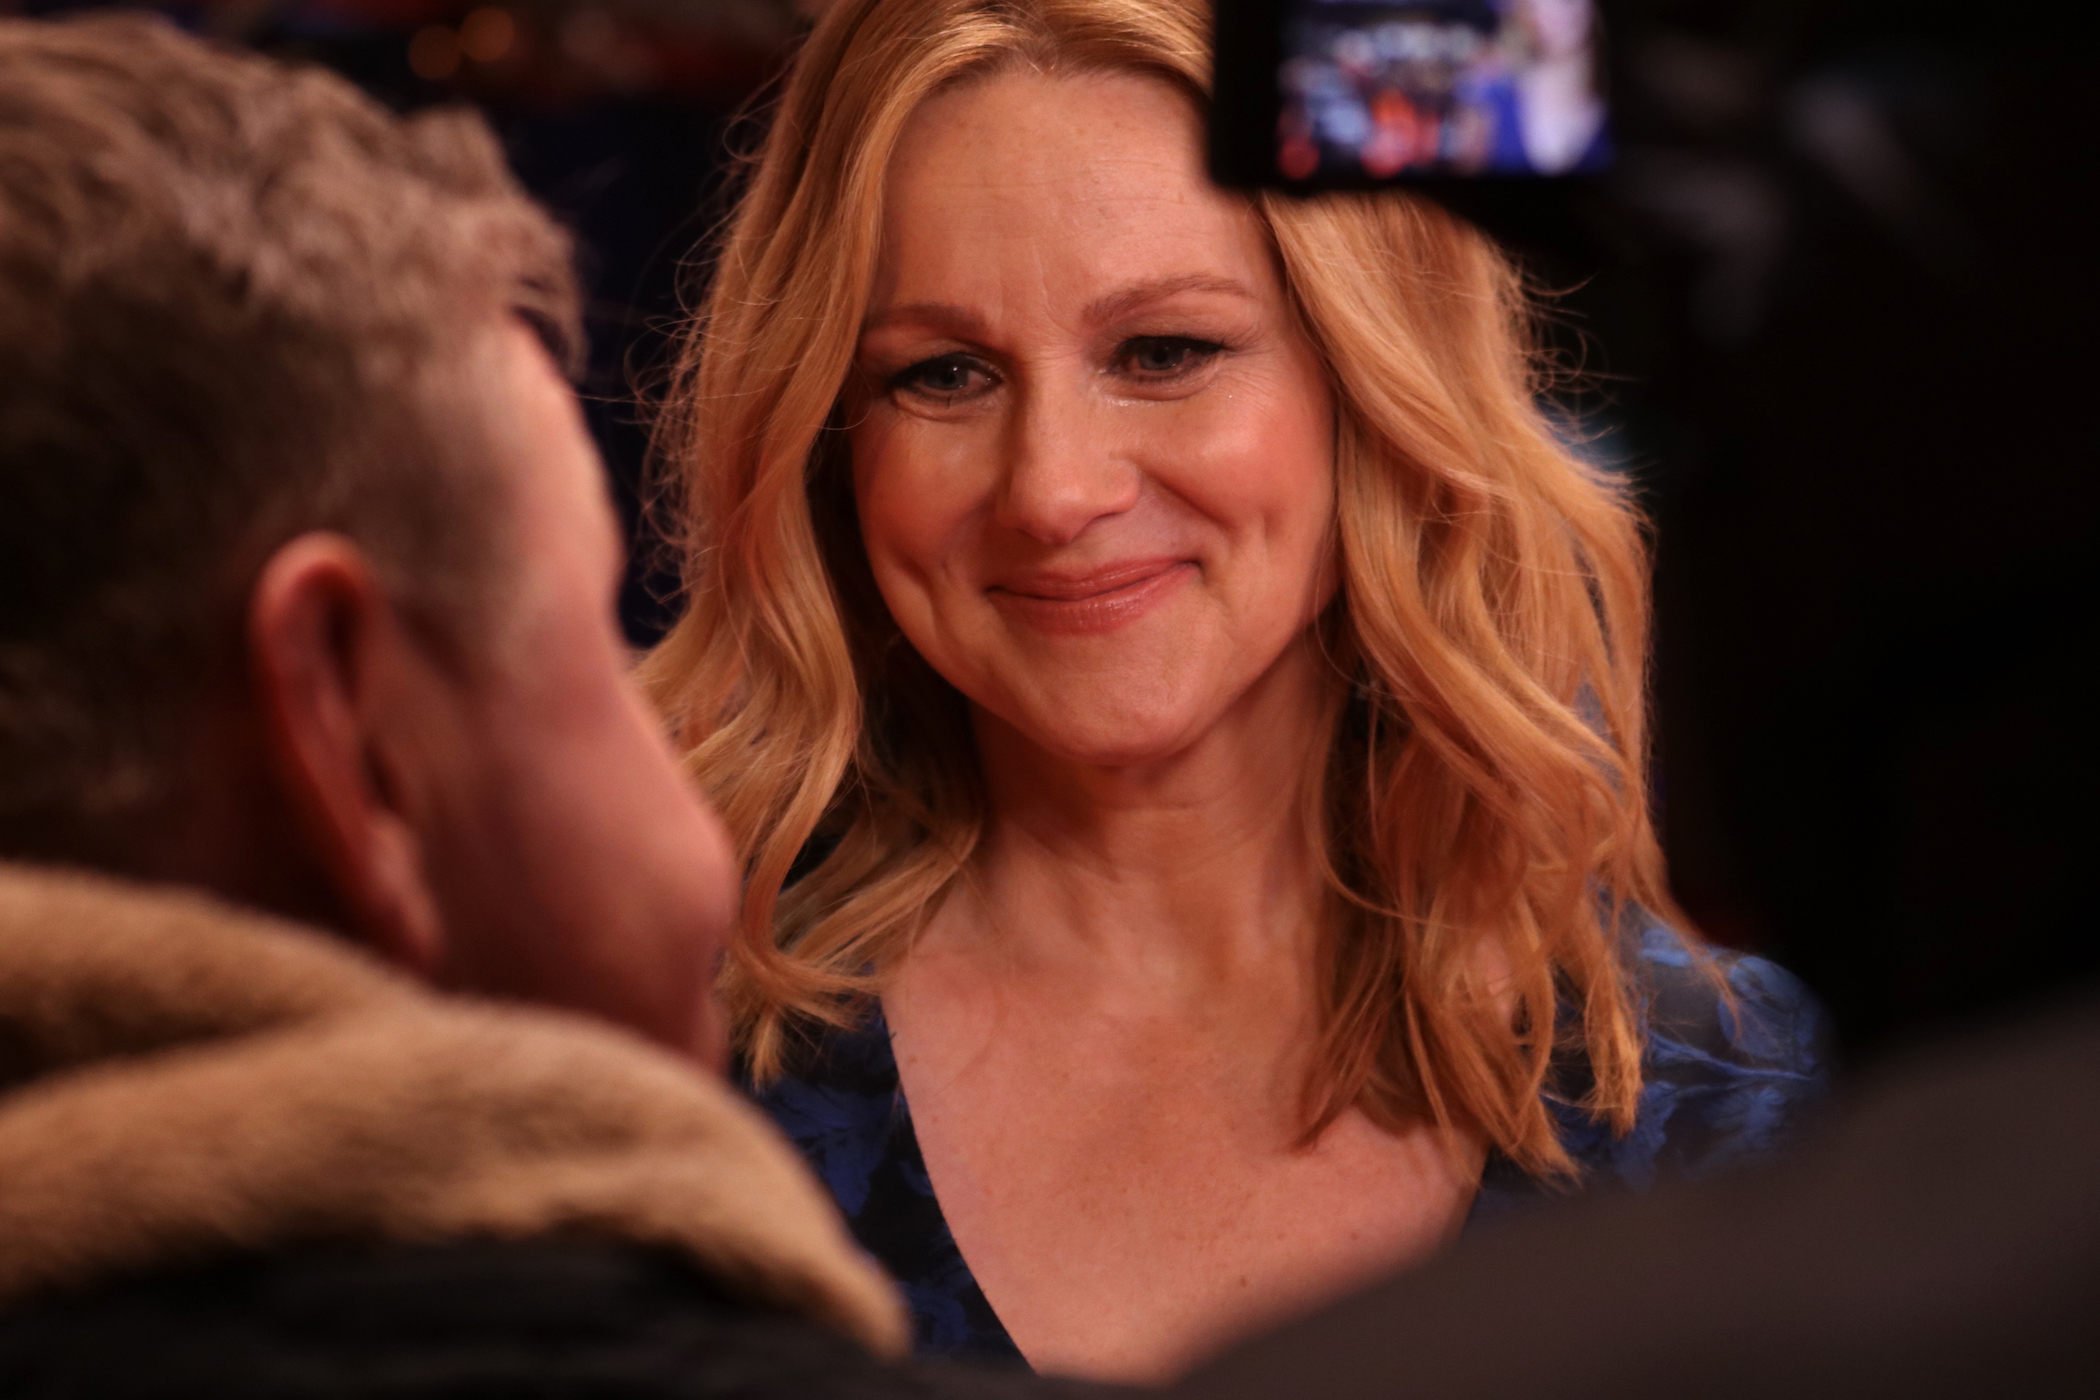 Berlino 2017: Laura Linney viene intervistata sul red carpet di The Dinner